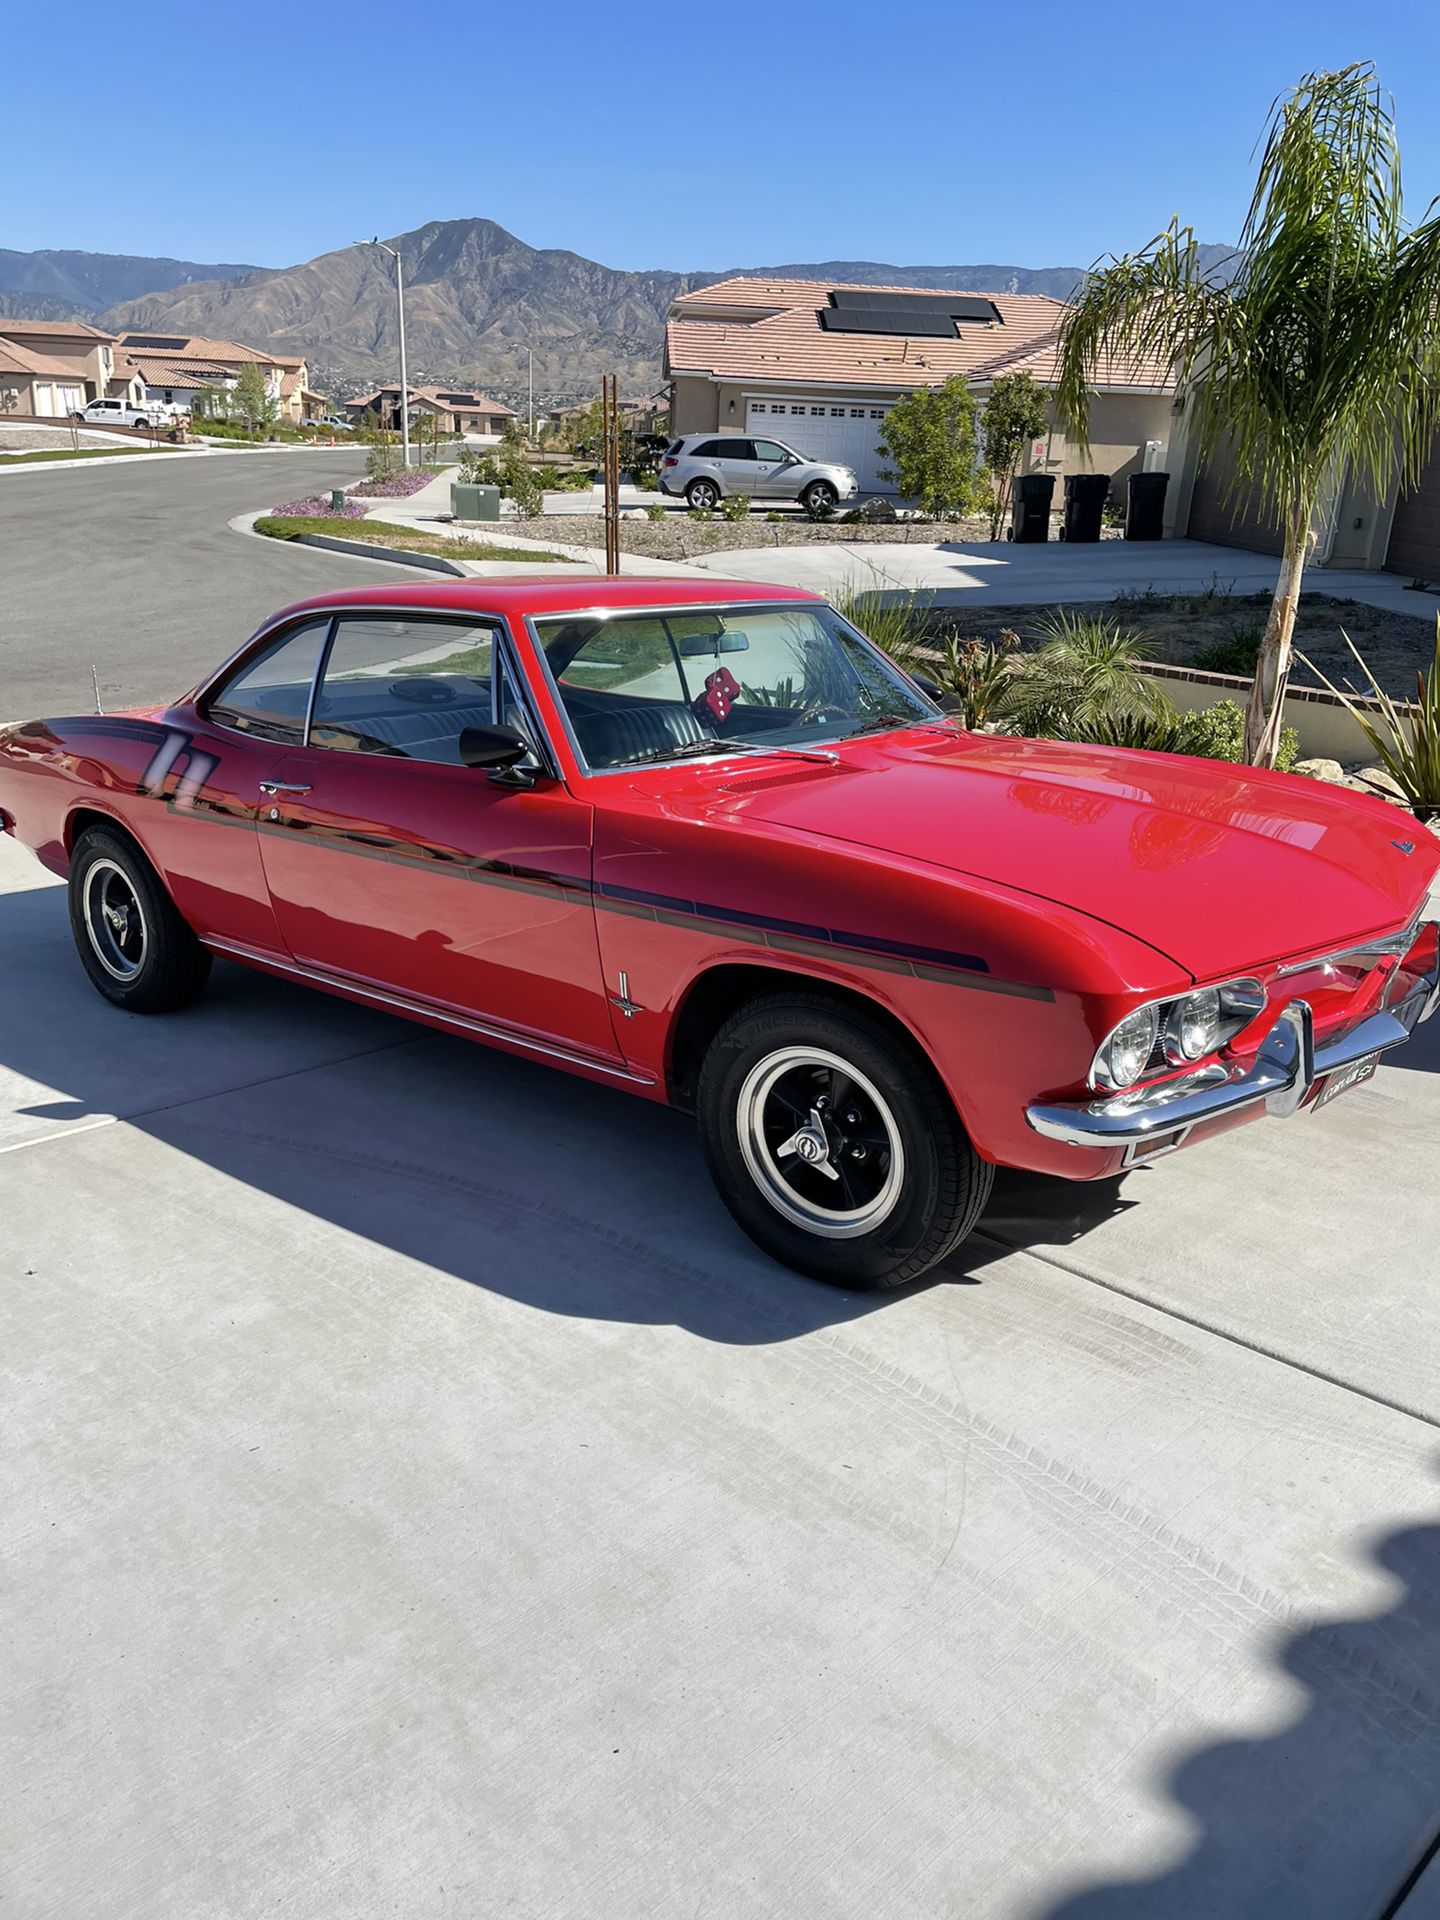 1965 Chevy Corvair Monza